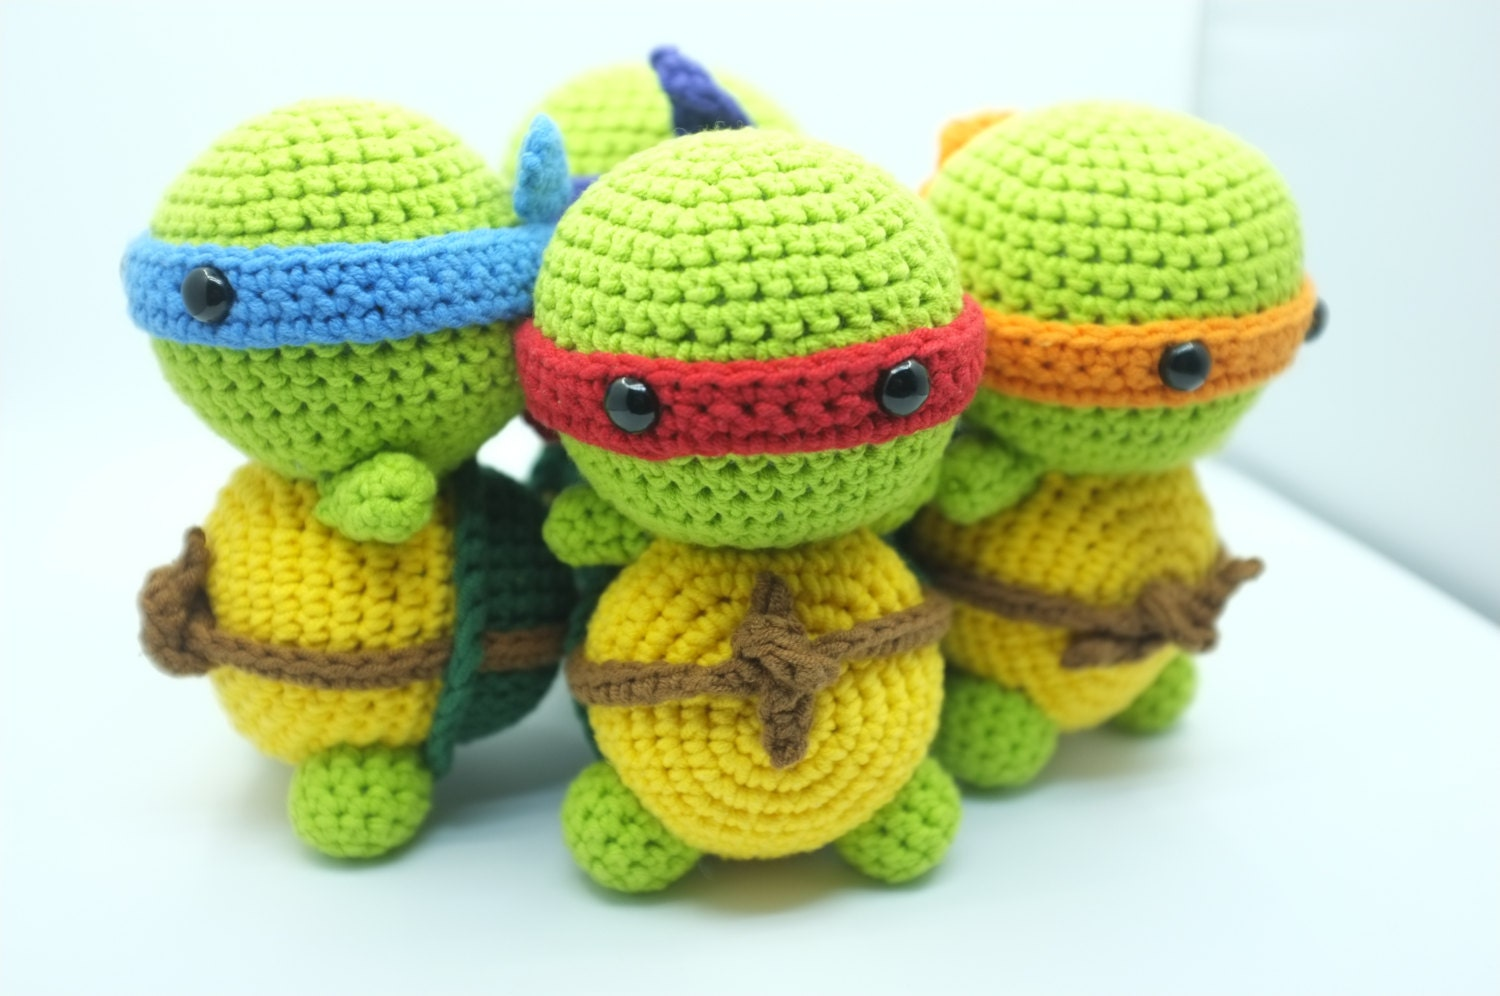 Amigurumi Animals At Work 14 Adorable Amp Active Amigurumi Animals : 18 of the most radical tmnt products money can buy shut up and